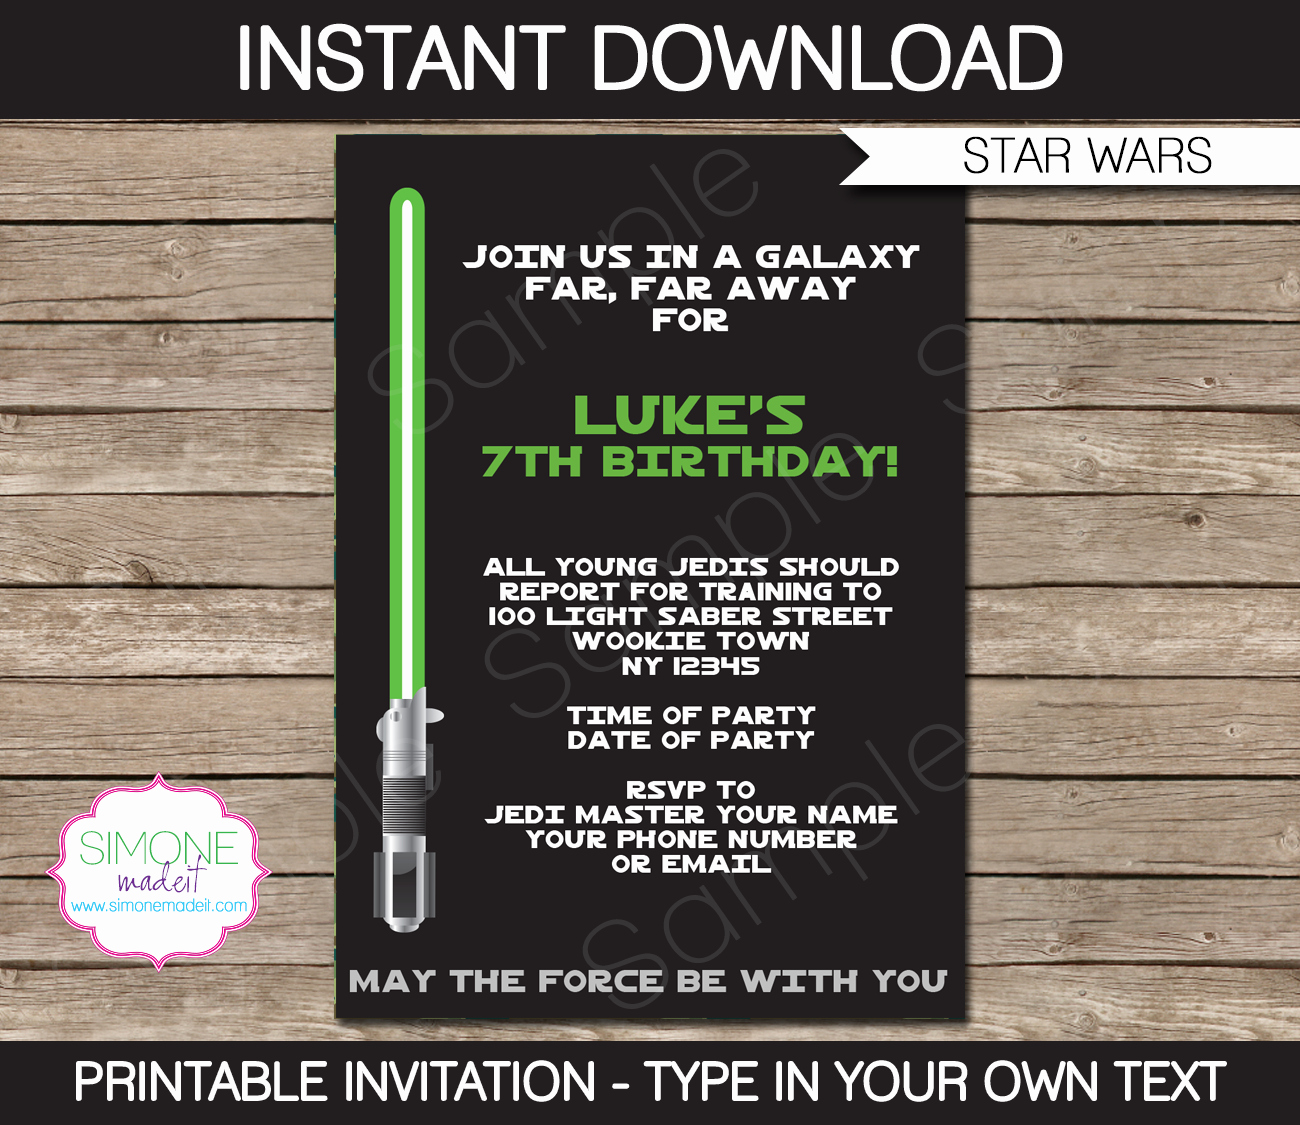 Star Wars Invitations Template Inspirational Star Wars Party Printables Invitations & Decorations